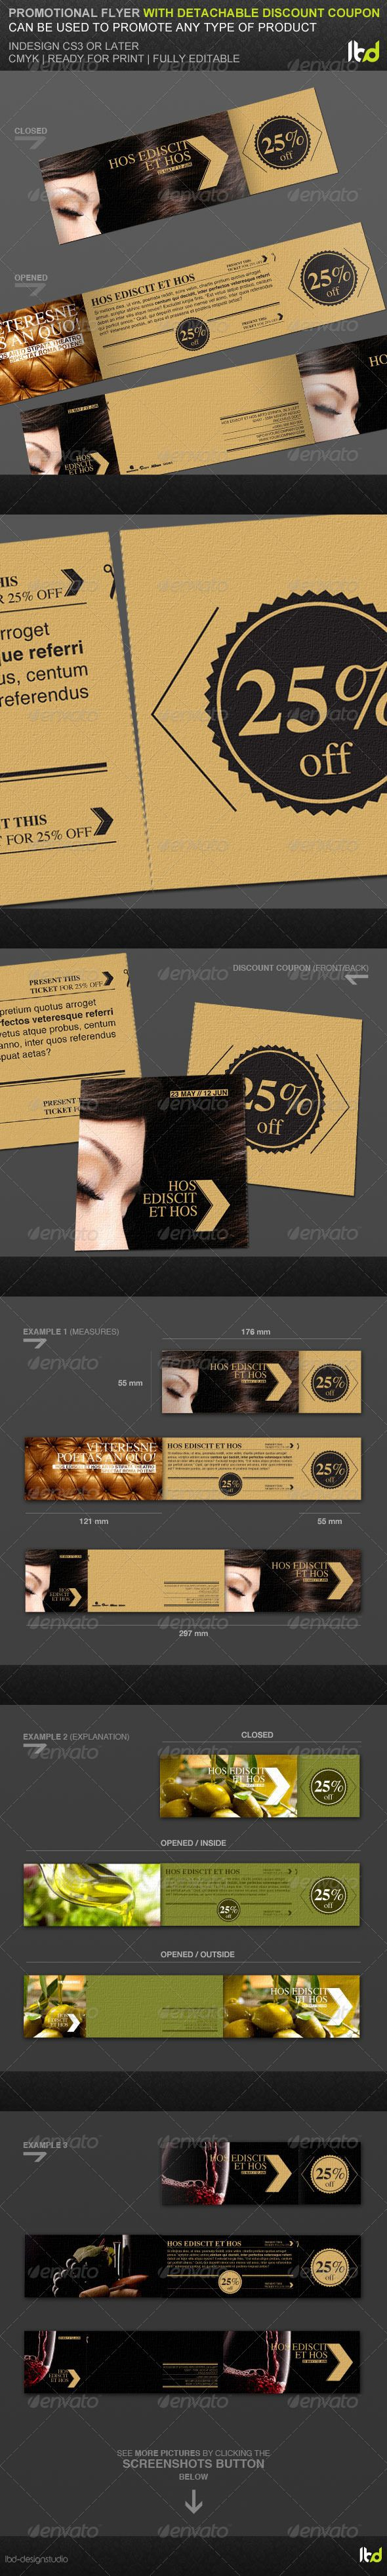 Promotional Flyer With Detachable Discount Coupon  Promotional